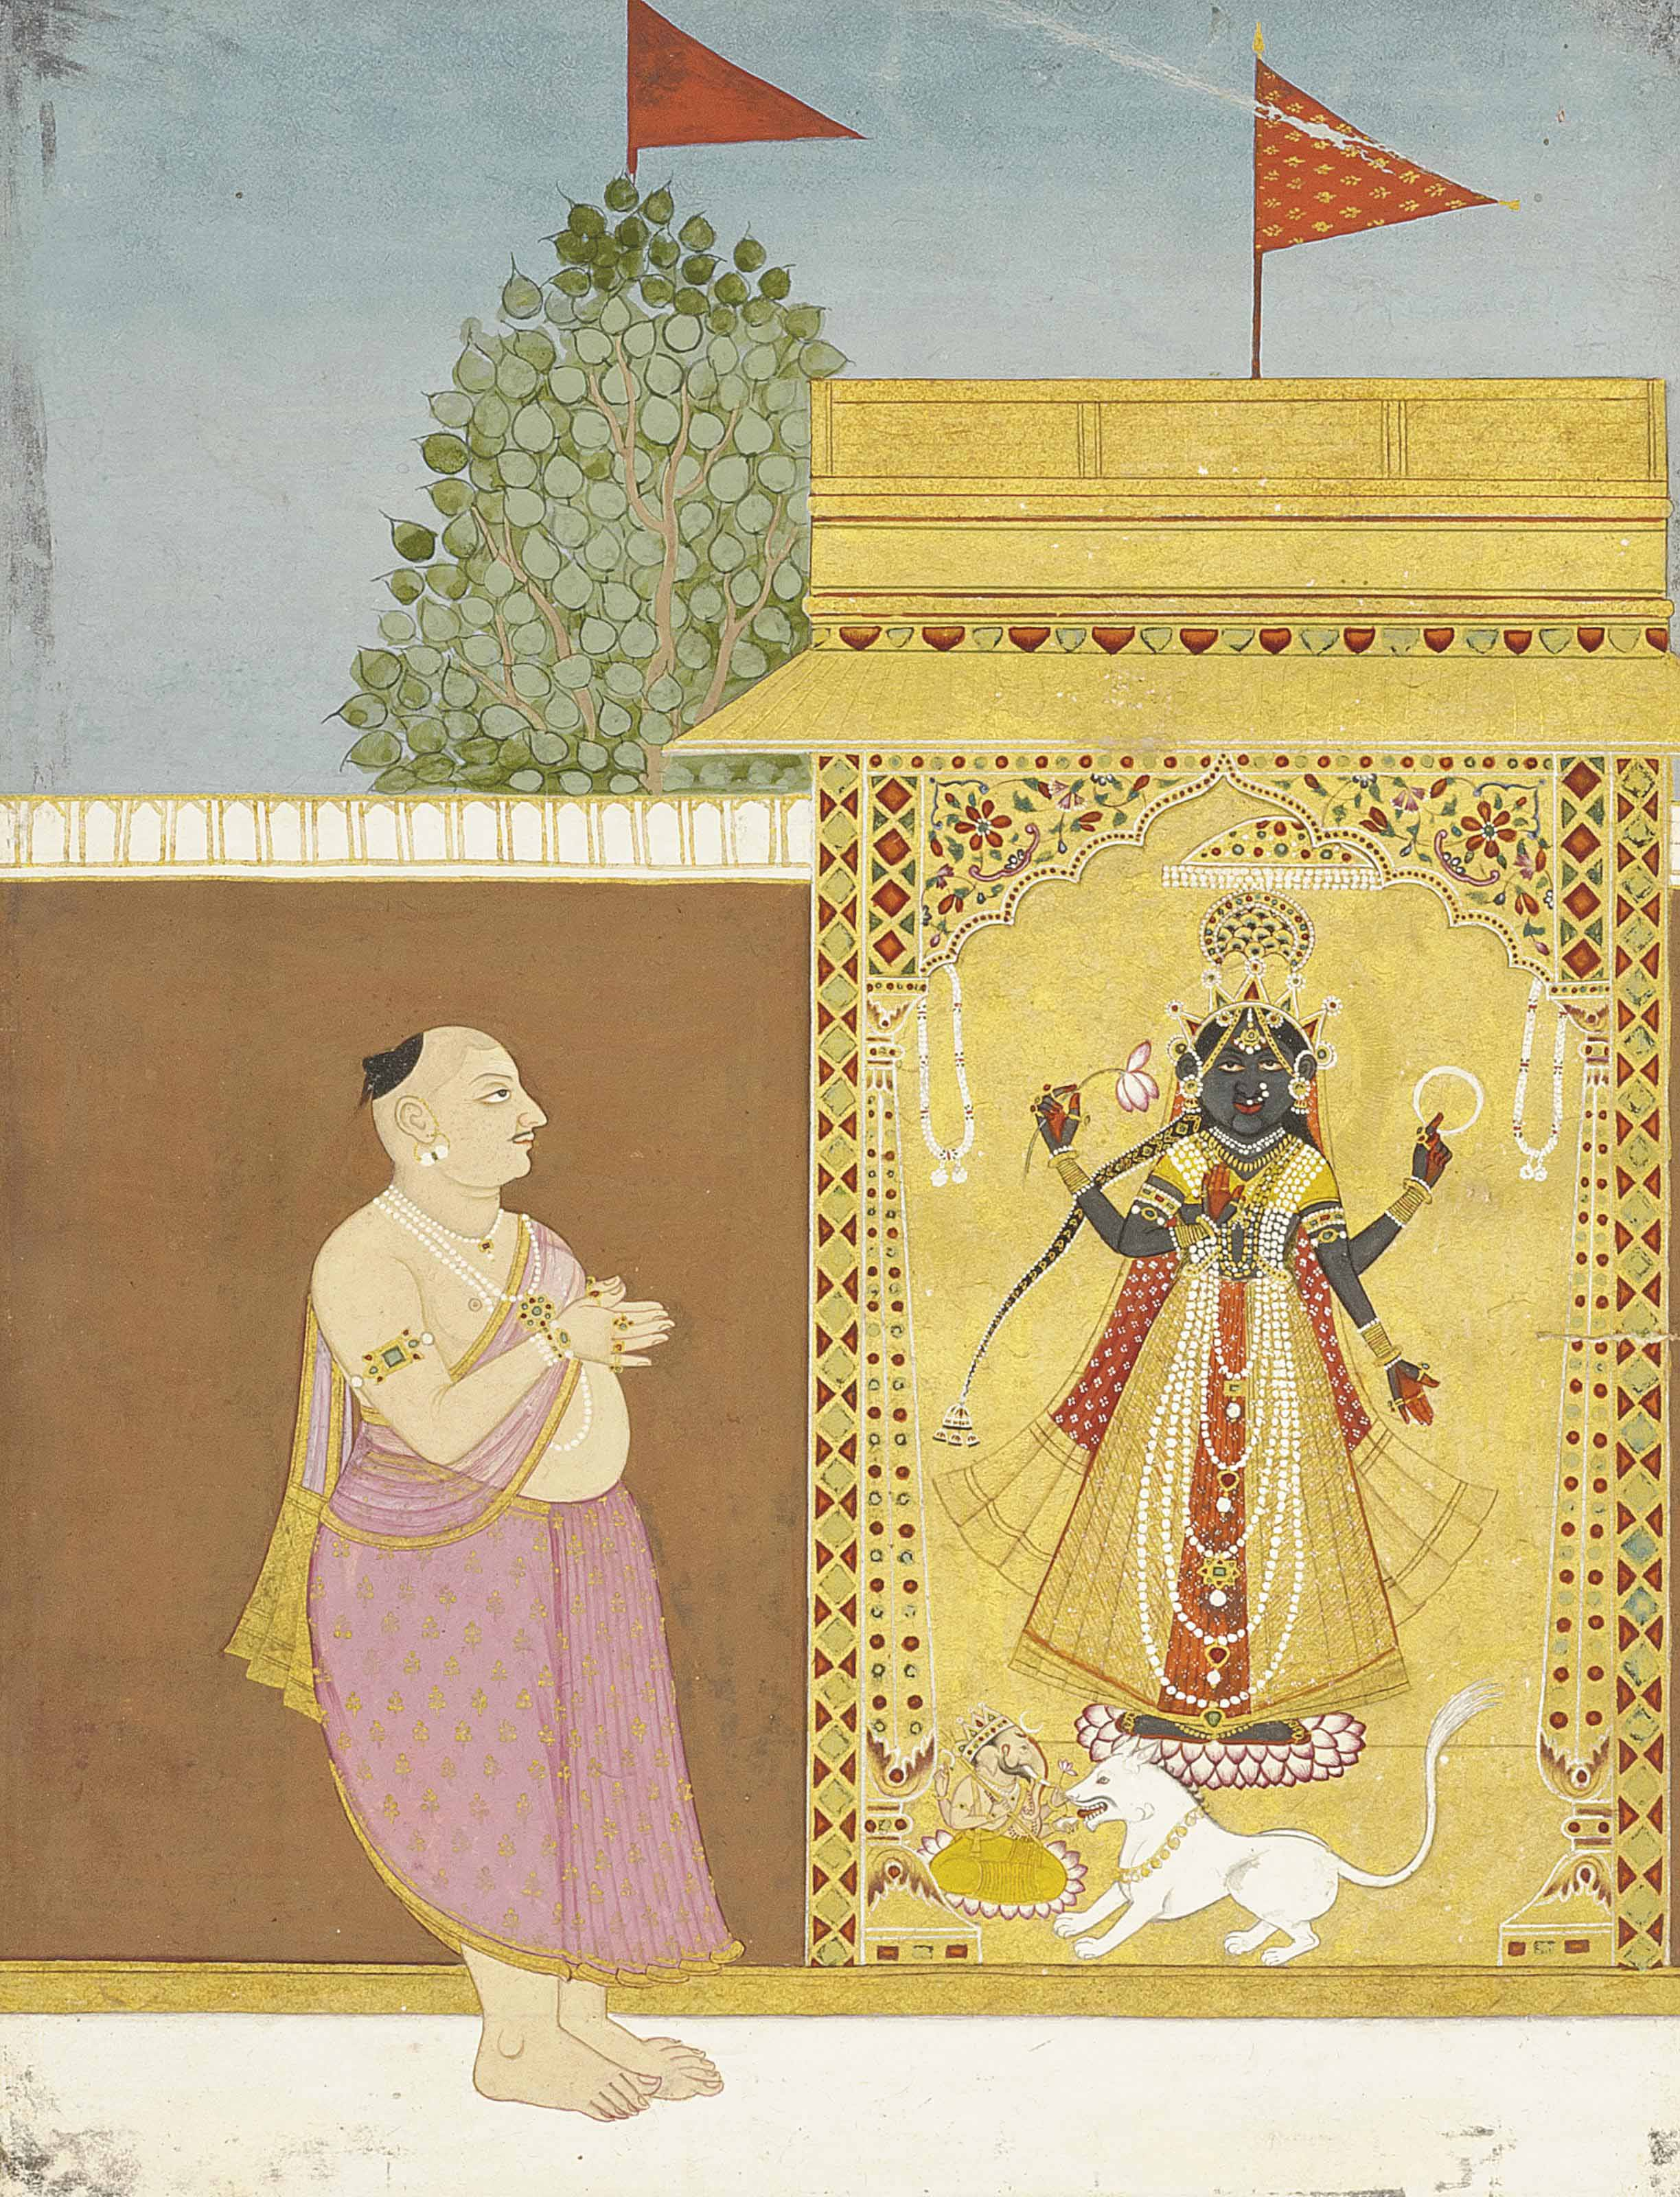 THE WORSHIP OF DEVI